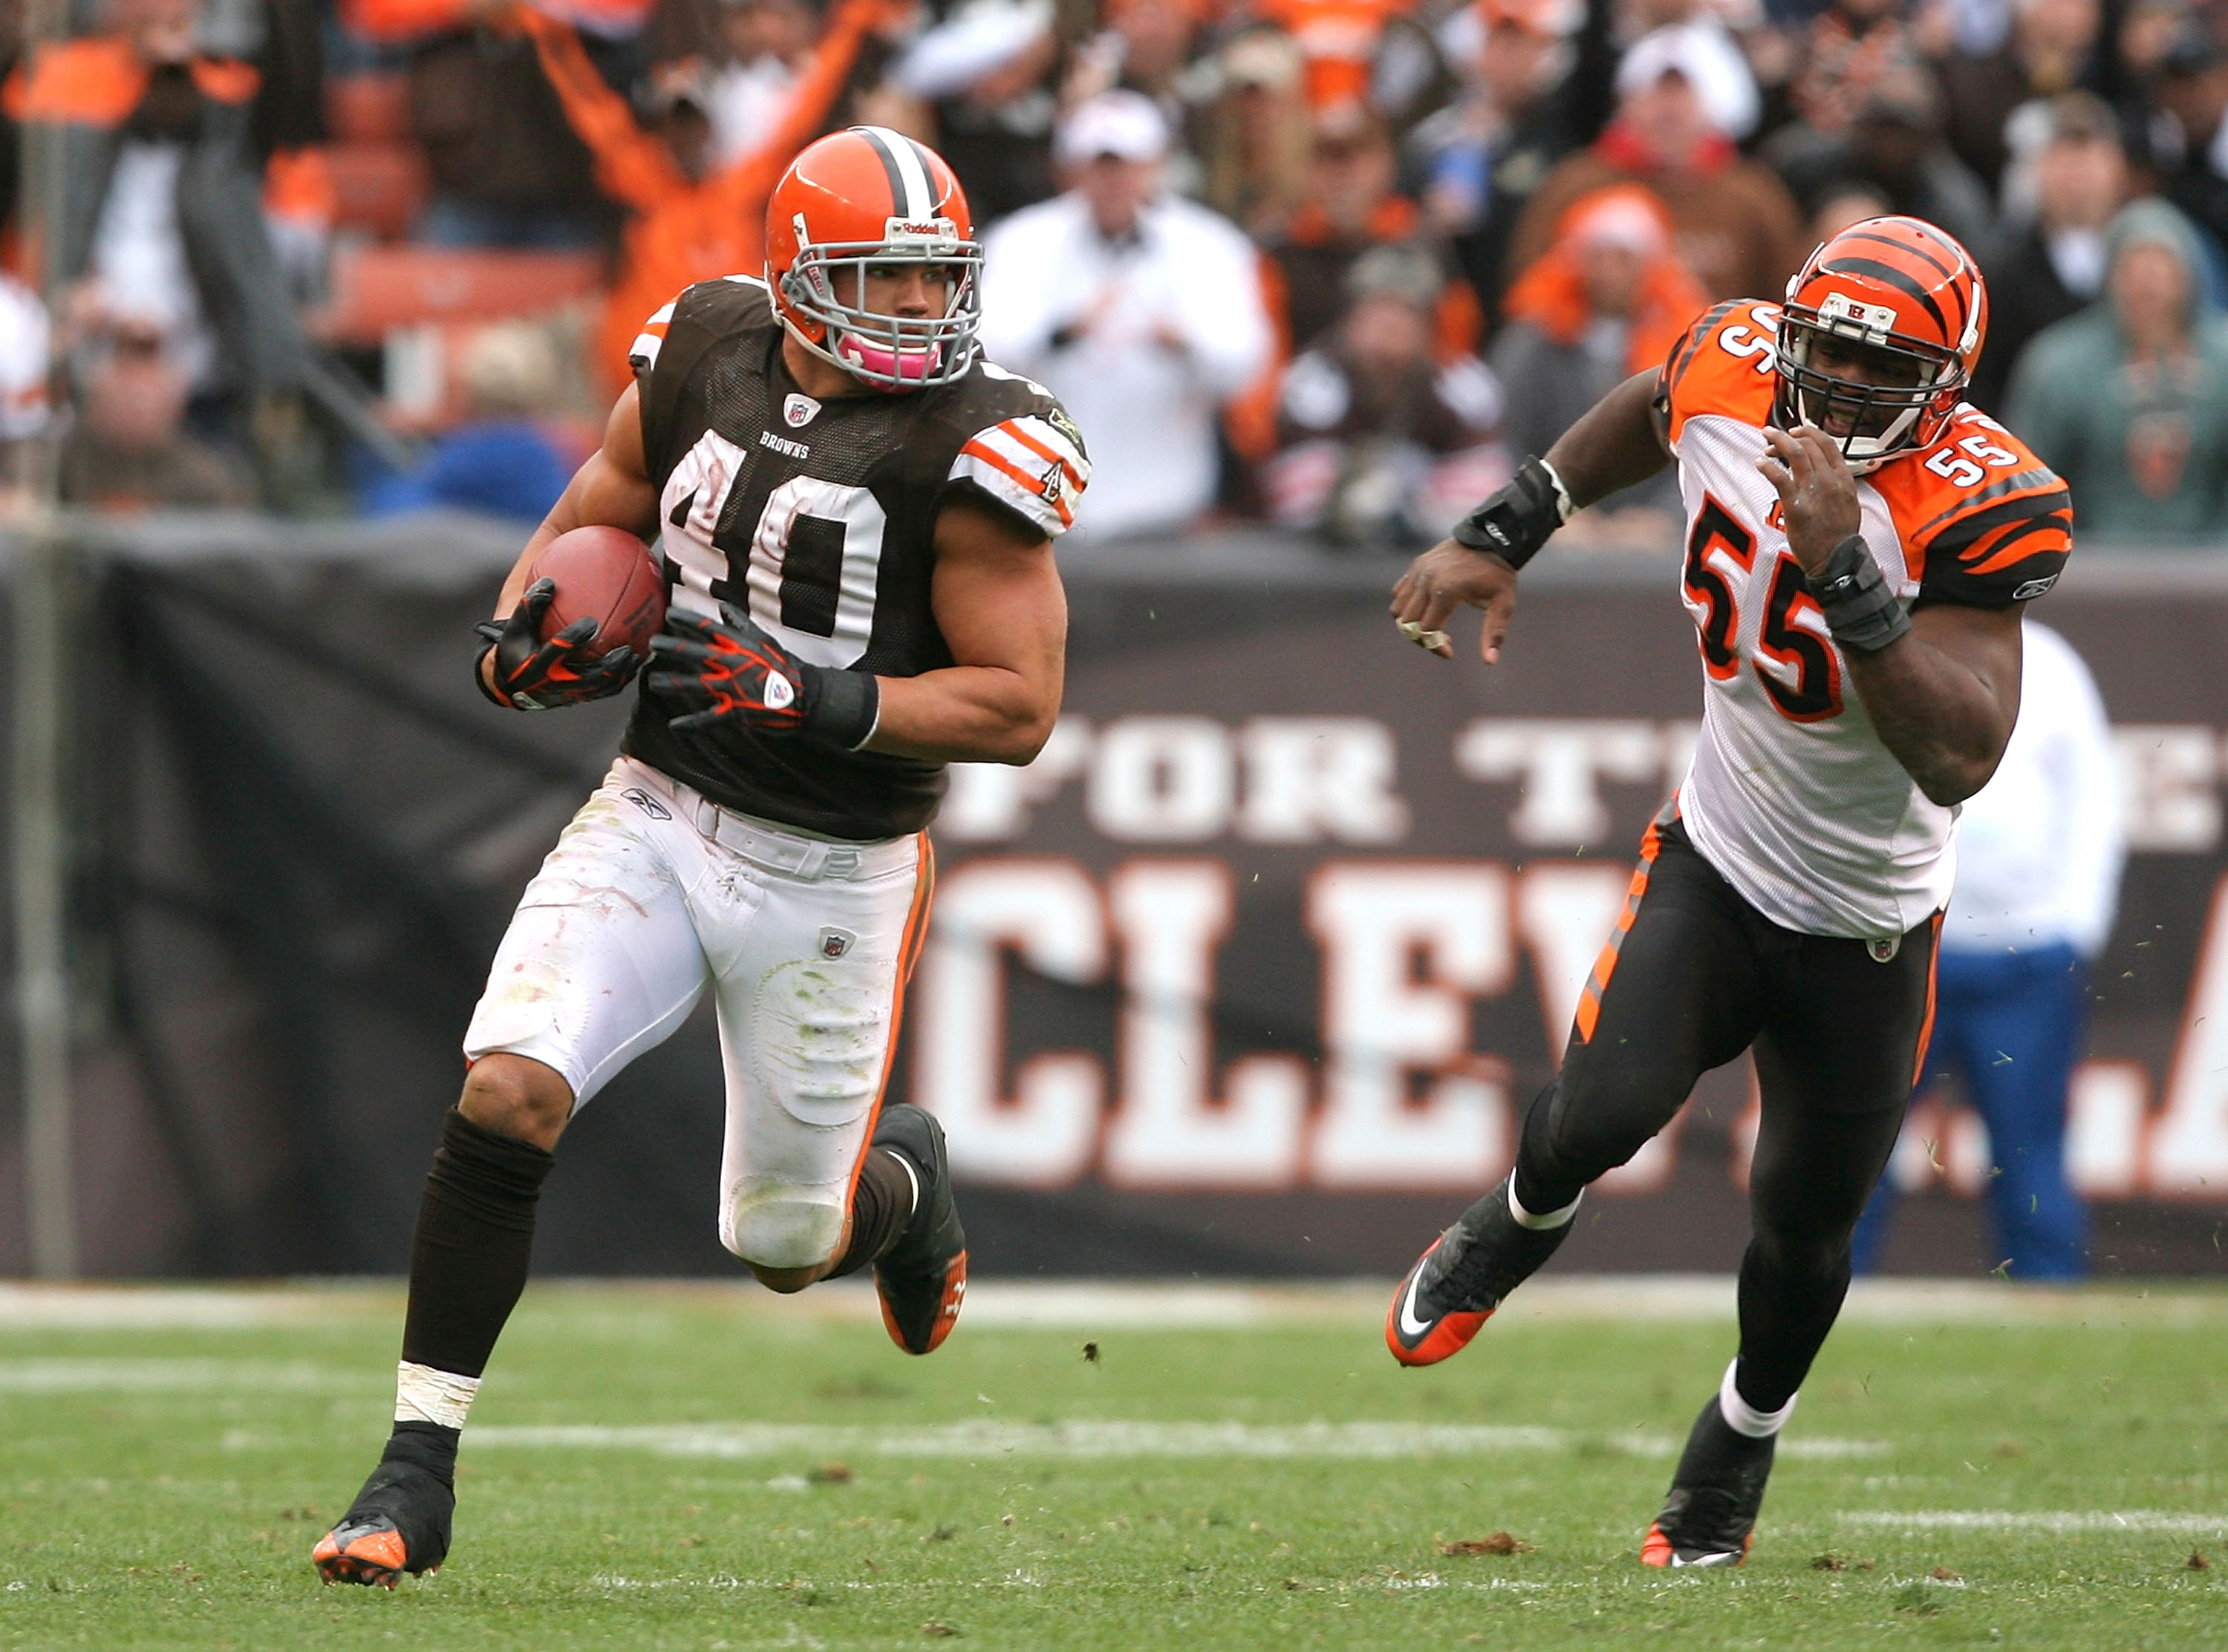 CLEVELAND - OCTOBER 03:  Running back Peyton Hillis #40 of the Cleveland Browns runs away from linebacker Keith Rivers #55 of the Cincinnati Bengals at Cleveland Browns Stadium on October 3, 2010 in Cleveland, Ohio.  (Photo by Matt Sullivan/Getty Images)